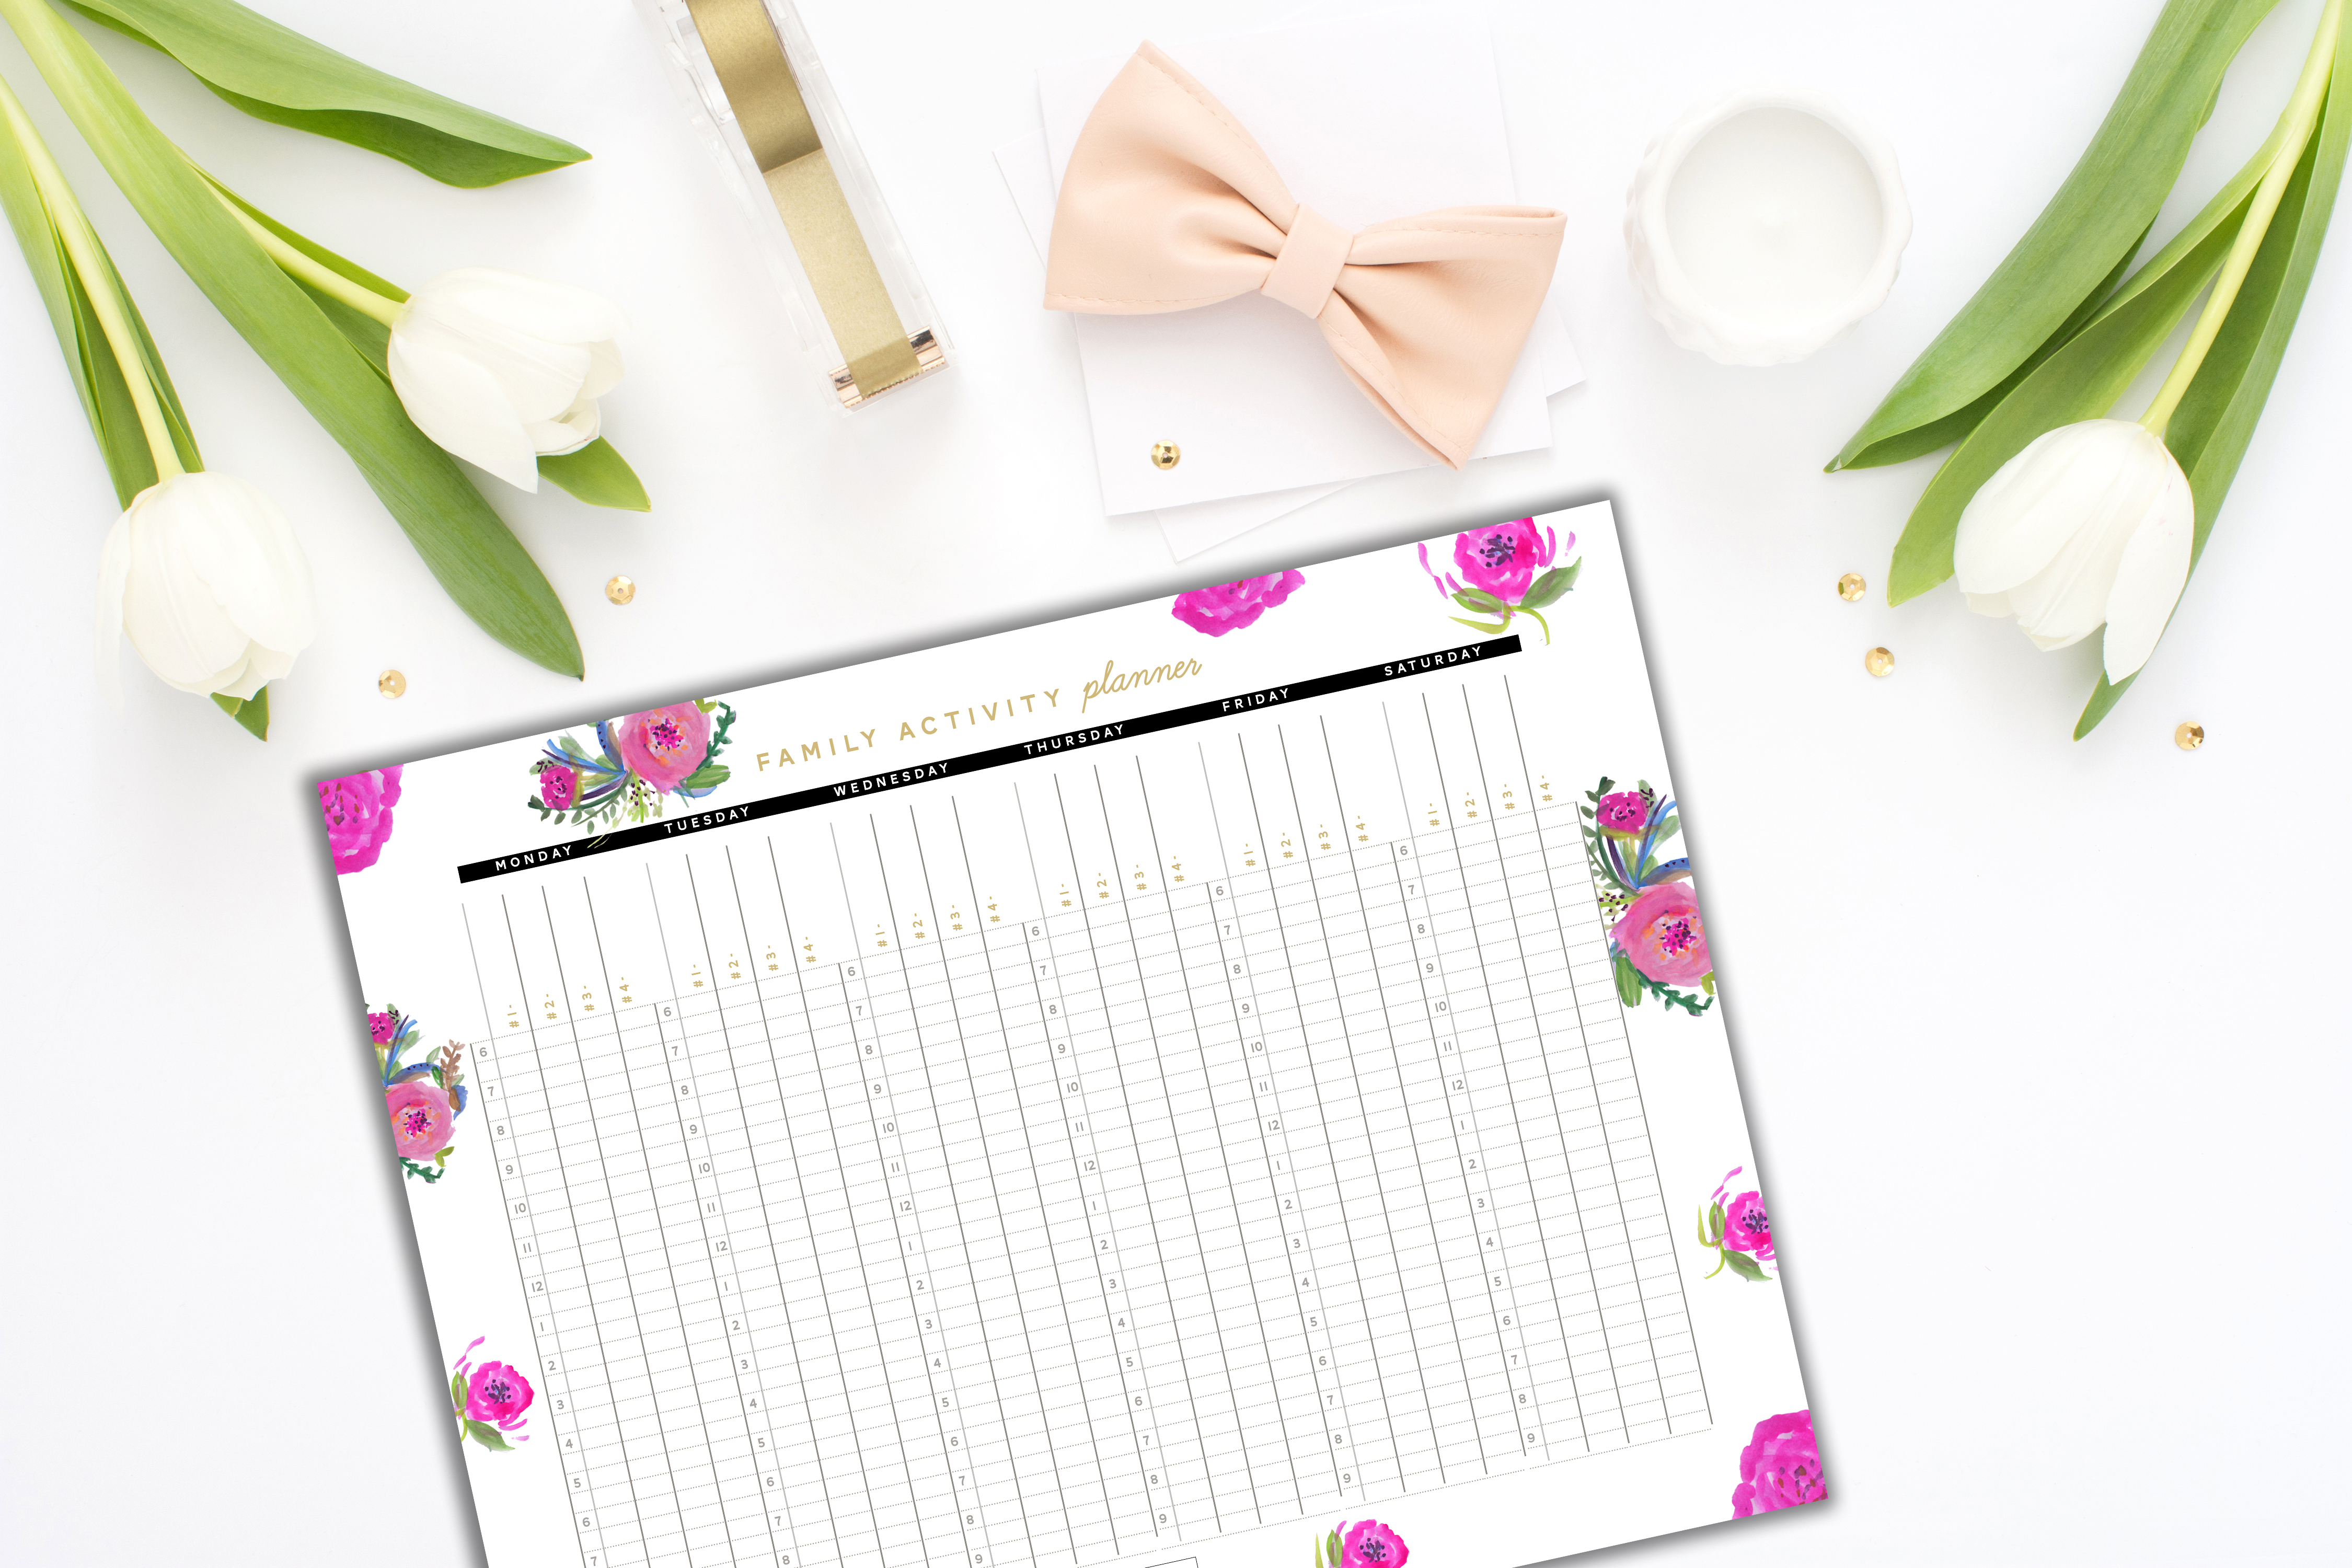 Family Activity Planner